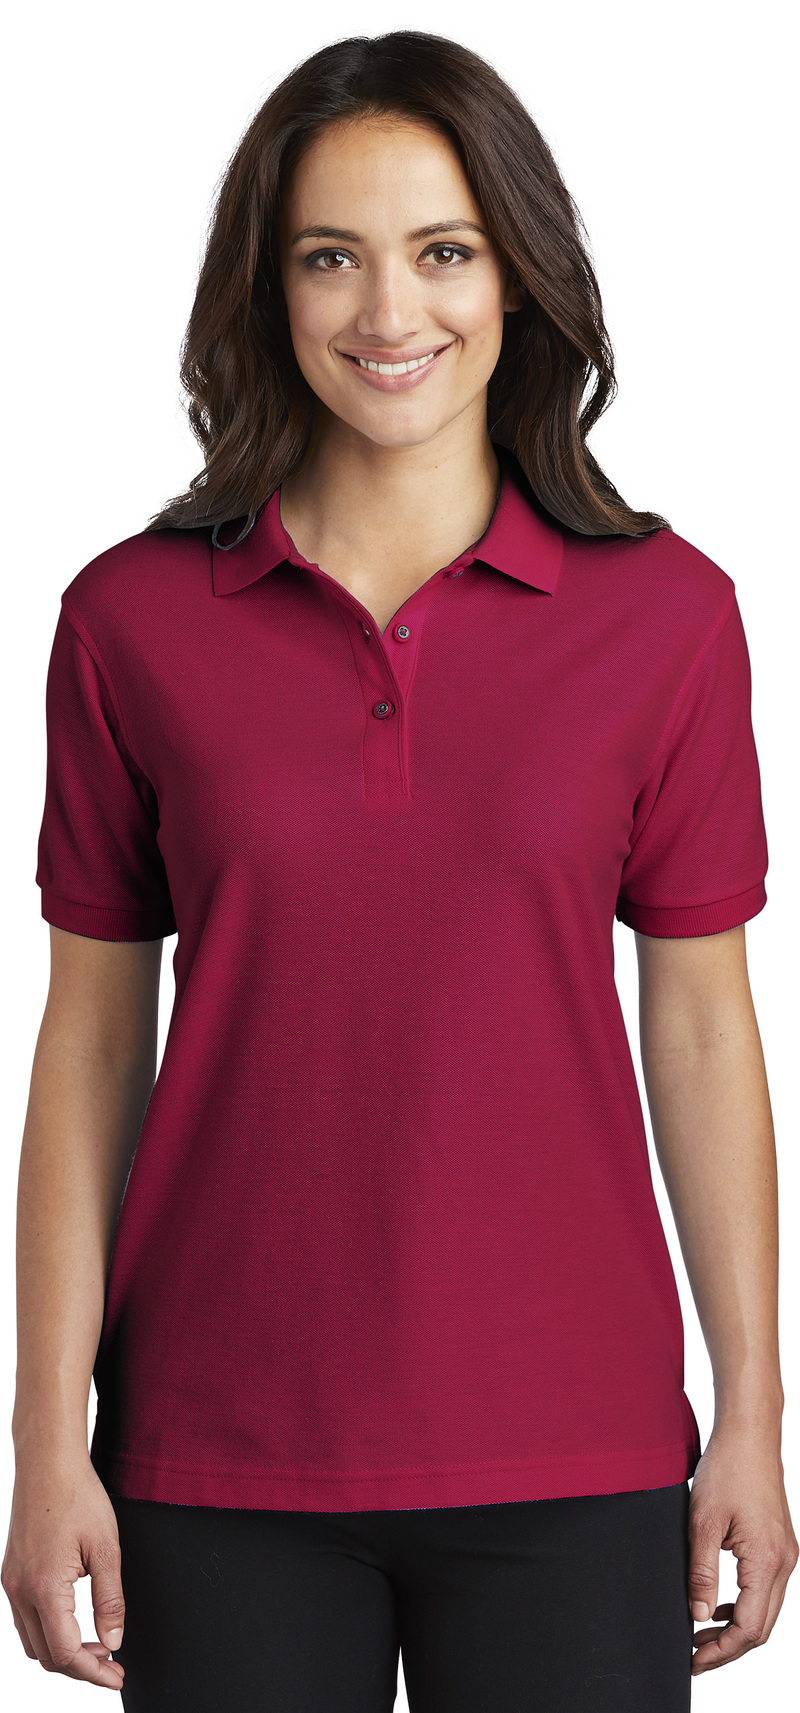 Queensboro Embroidered Women's Silk Touch Pique Polo